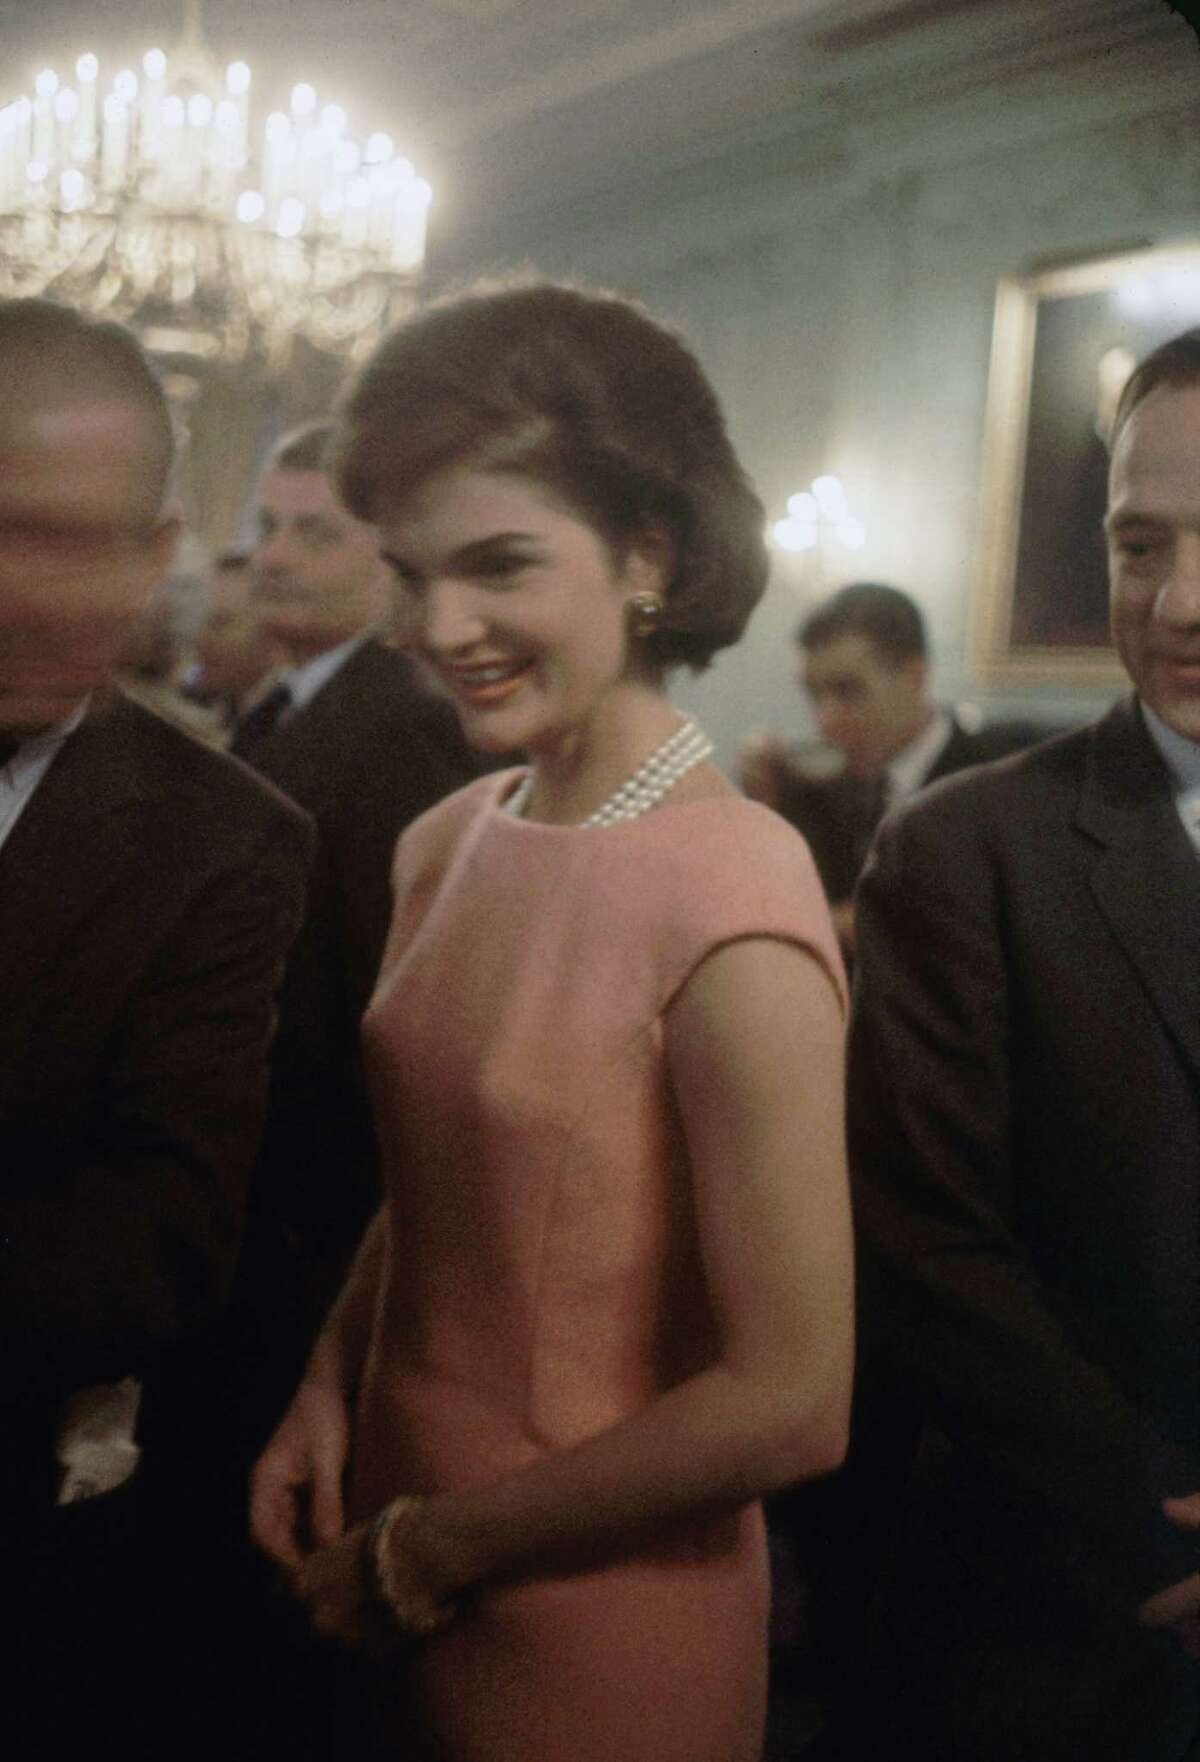 Jacqueline Kennedy She remarried in 1968, however her husband Aristotle Onassis died seven years later. Jacqueline died in Manhattan in 1994 at the age of 64 after suffering from non-Hodgkin's lymphoma.